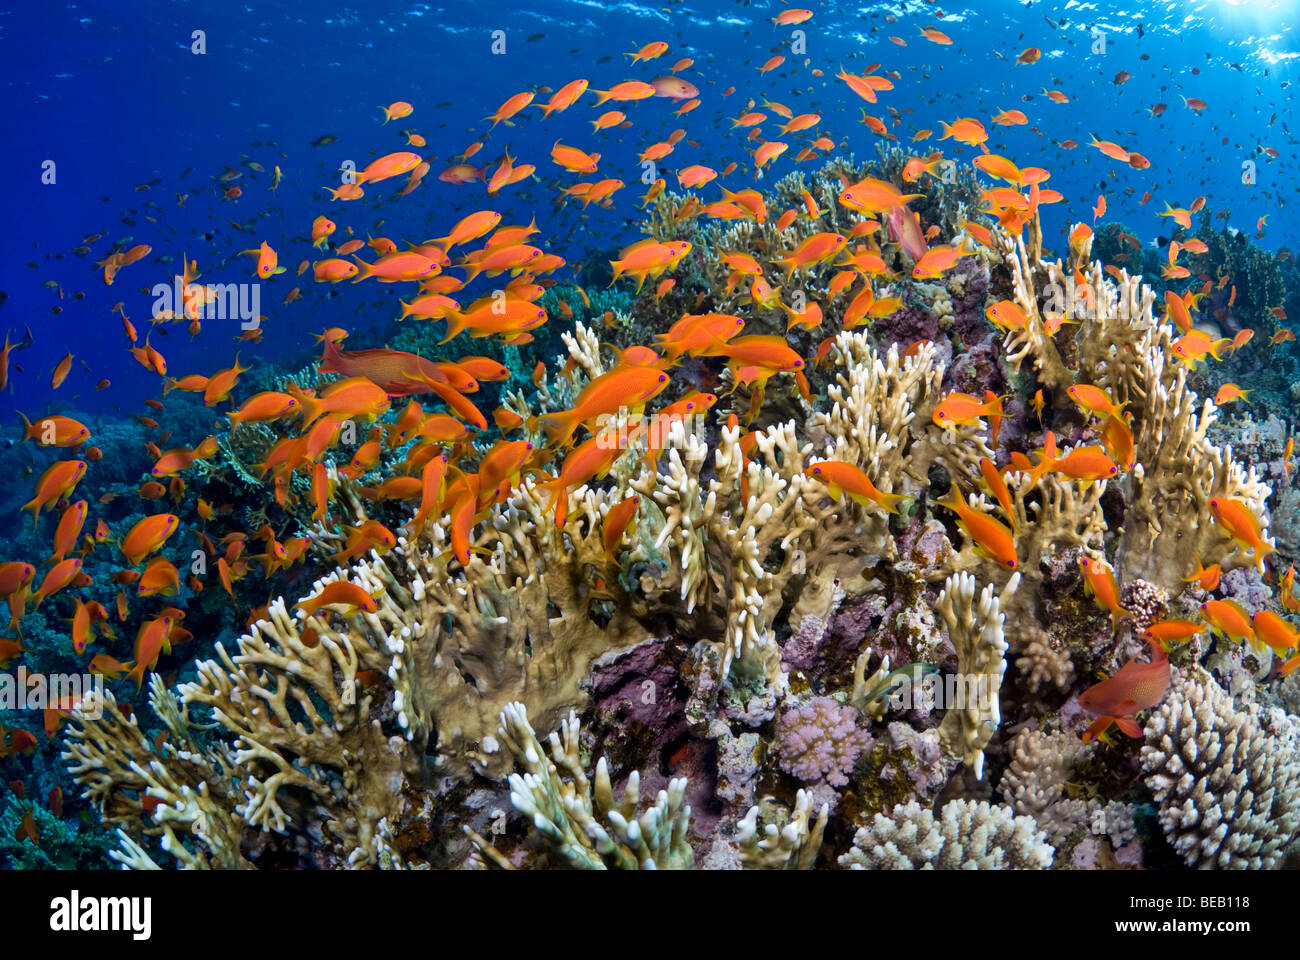 Sunrise on the fire coral reef with shoal of anthias. - Stock Image